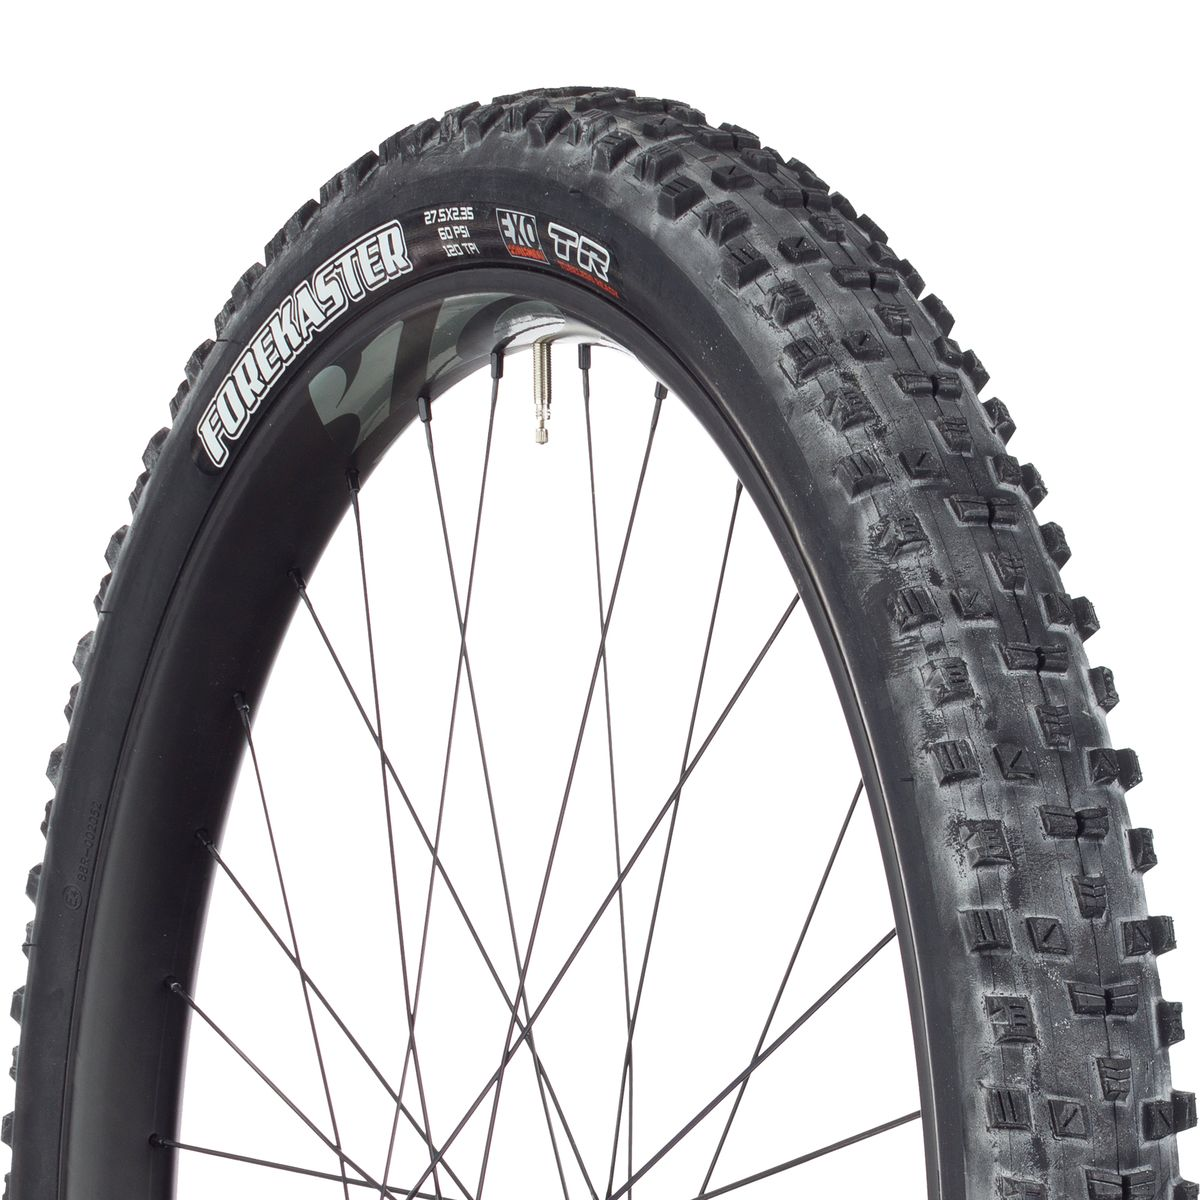 Maxxis Forekaster 27.5x2.35 120tpi Black Dual Compound Tubeless Ready EXO